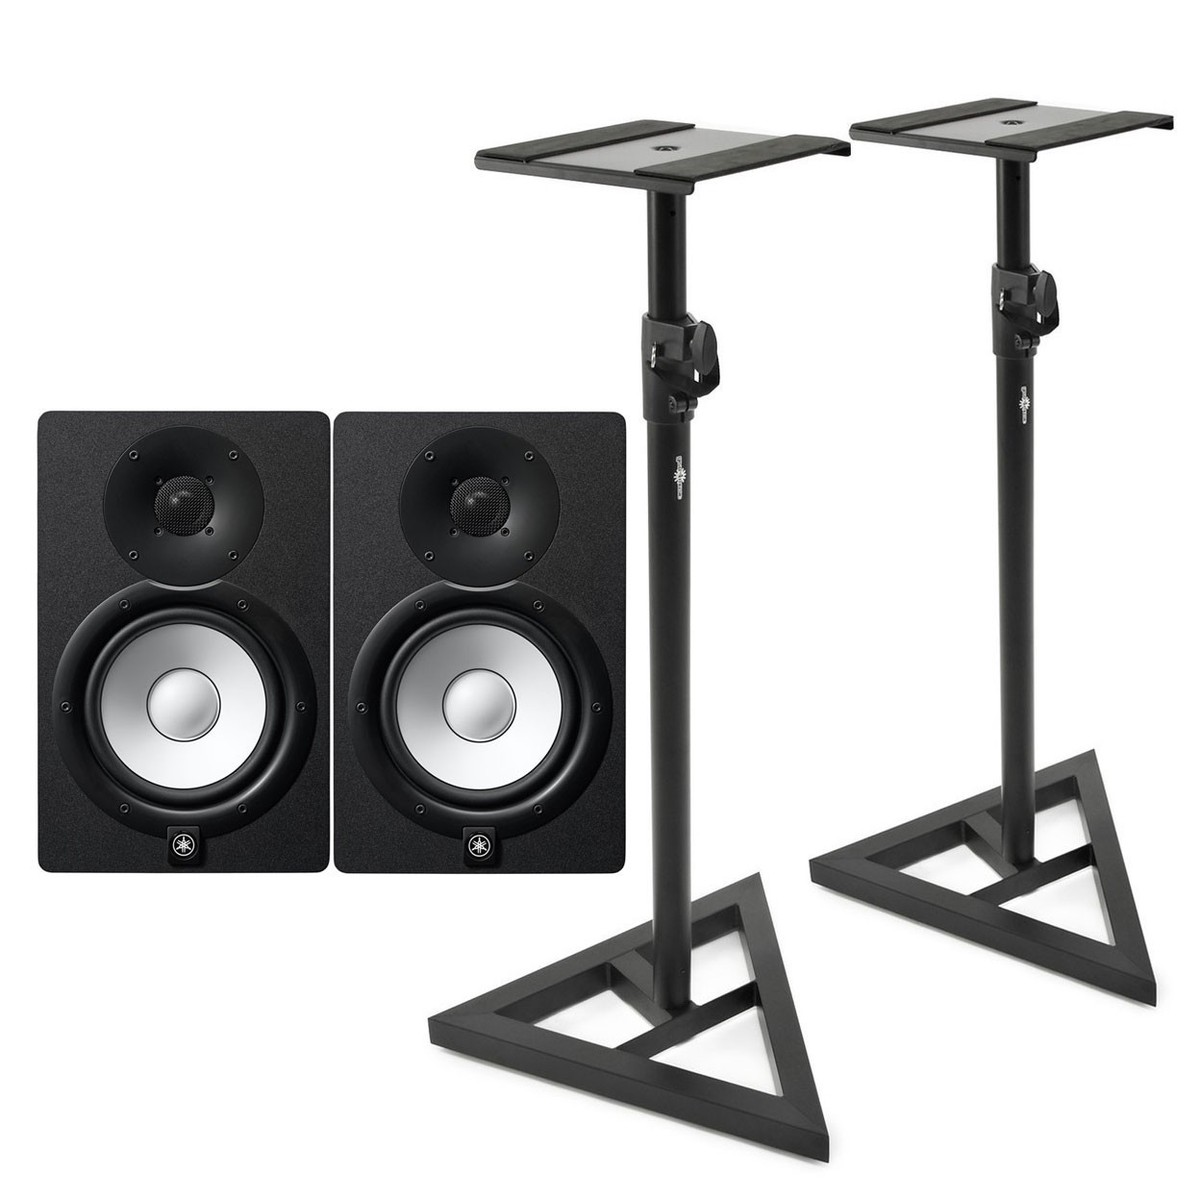 yamaha hs7 active studio monitors pair with stands at. Black Bedroom Furniture Sets. Home Design Ideas